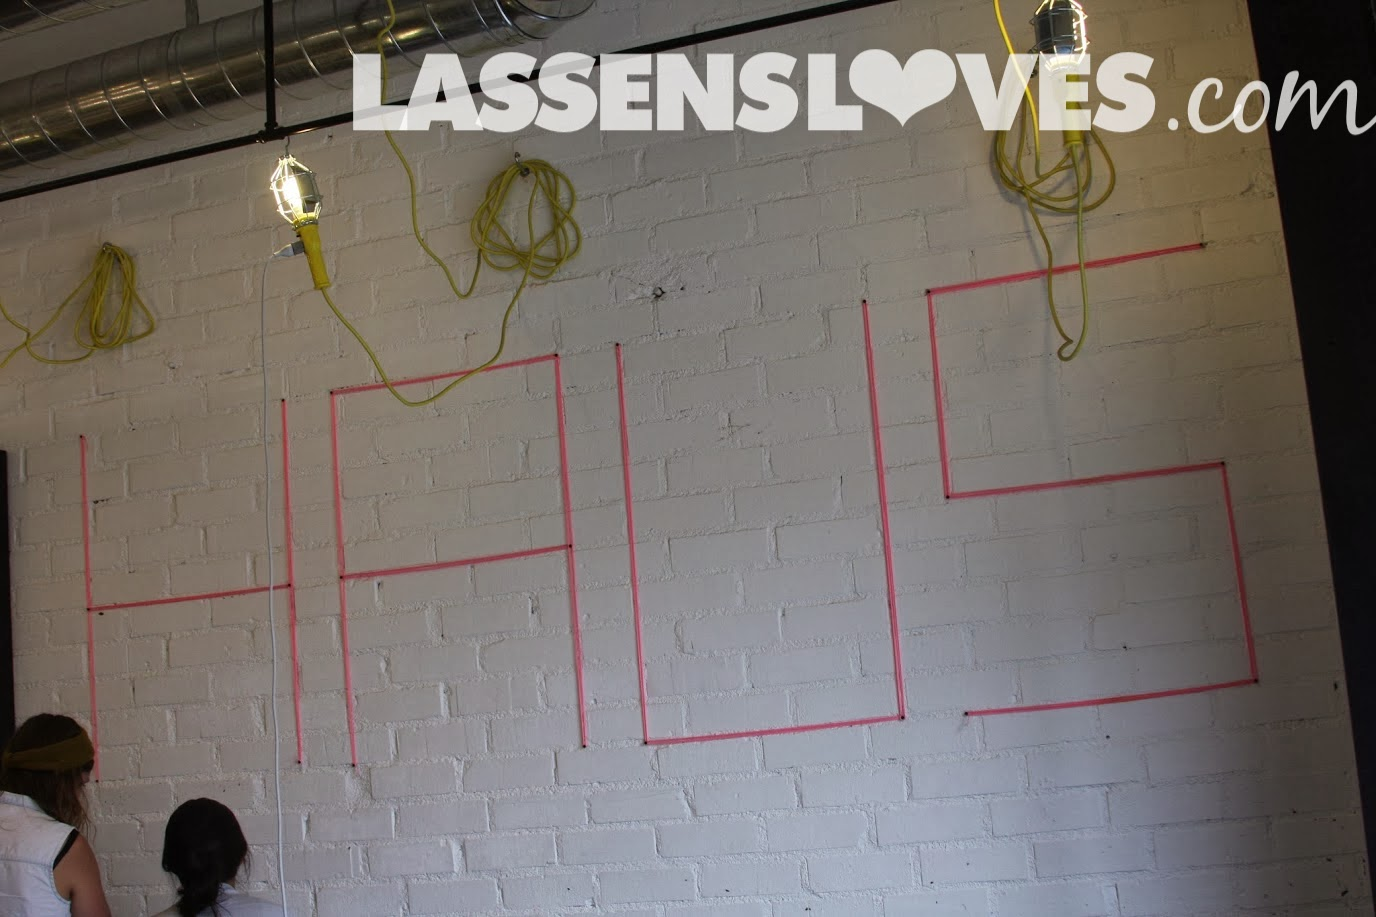 lassensloves.com, Lassen's, Lassens, Coolhaus+Ice+Cream+Sandwiches